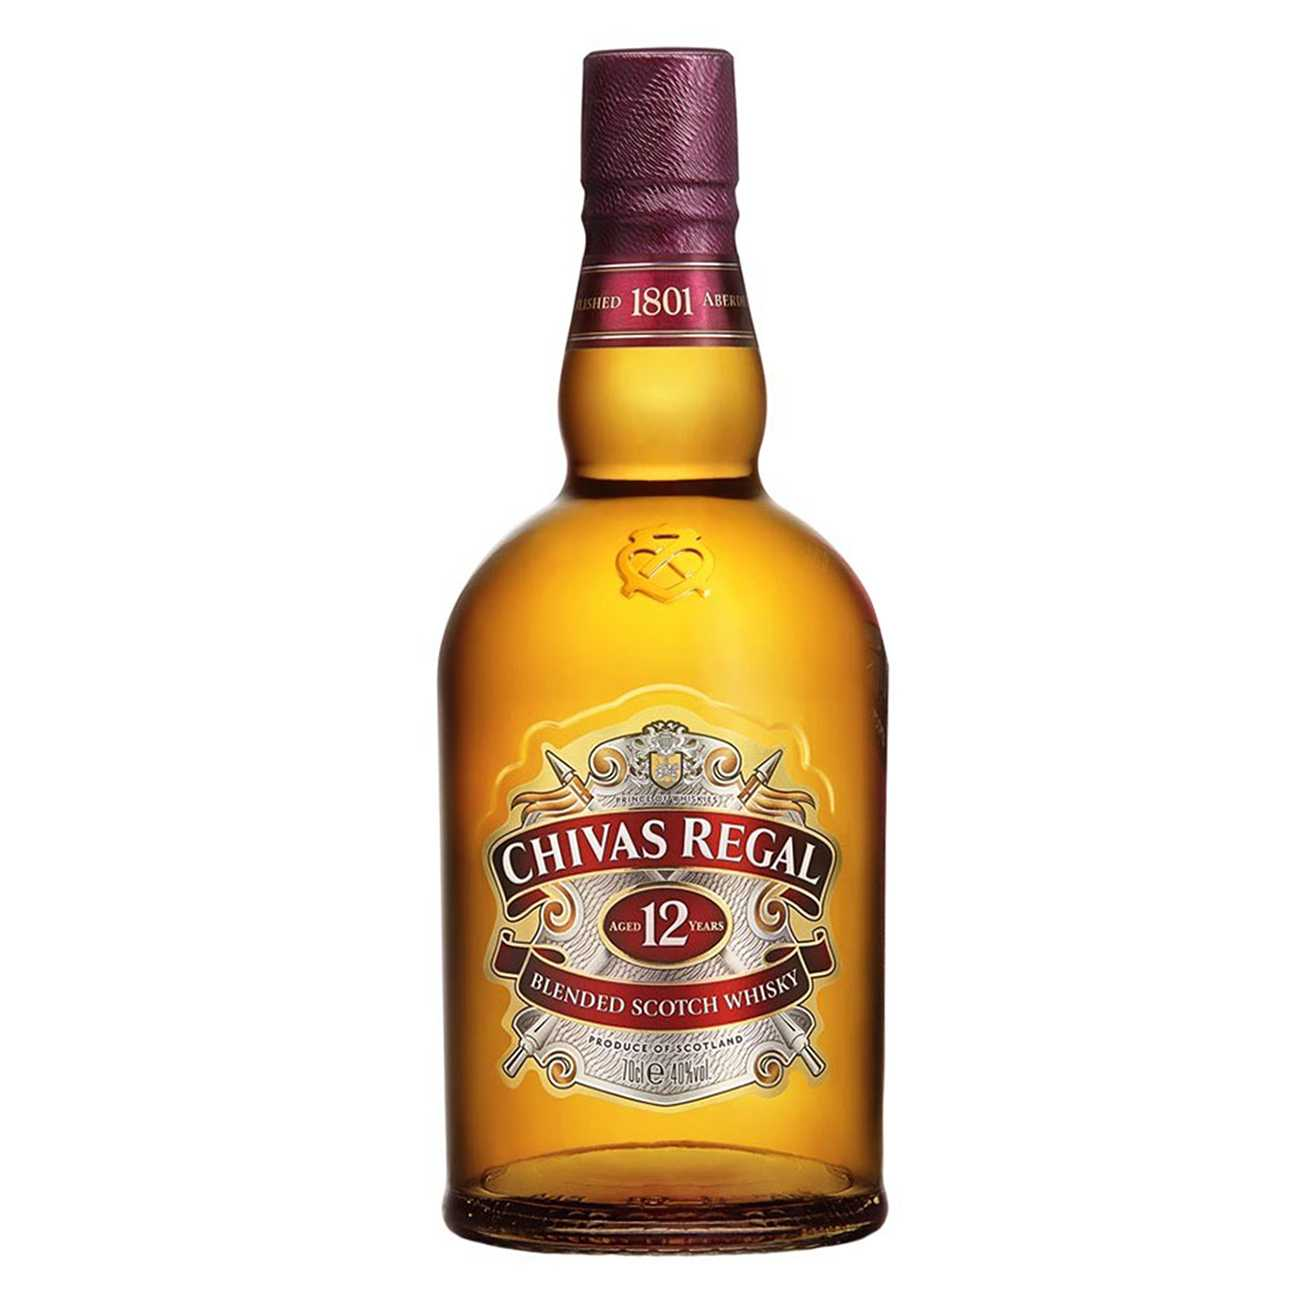 Whisky scotian, 12Y IN GLOBE-TROTTER, Chivas Regal